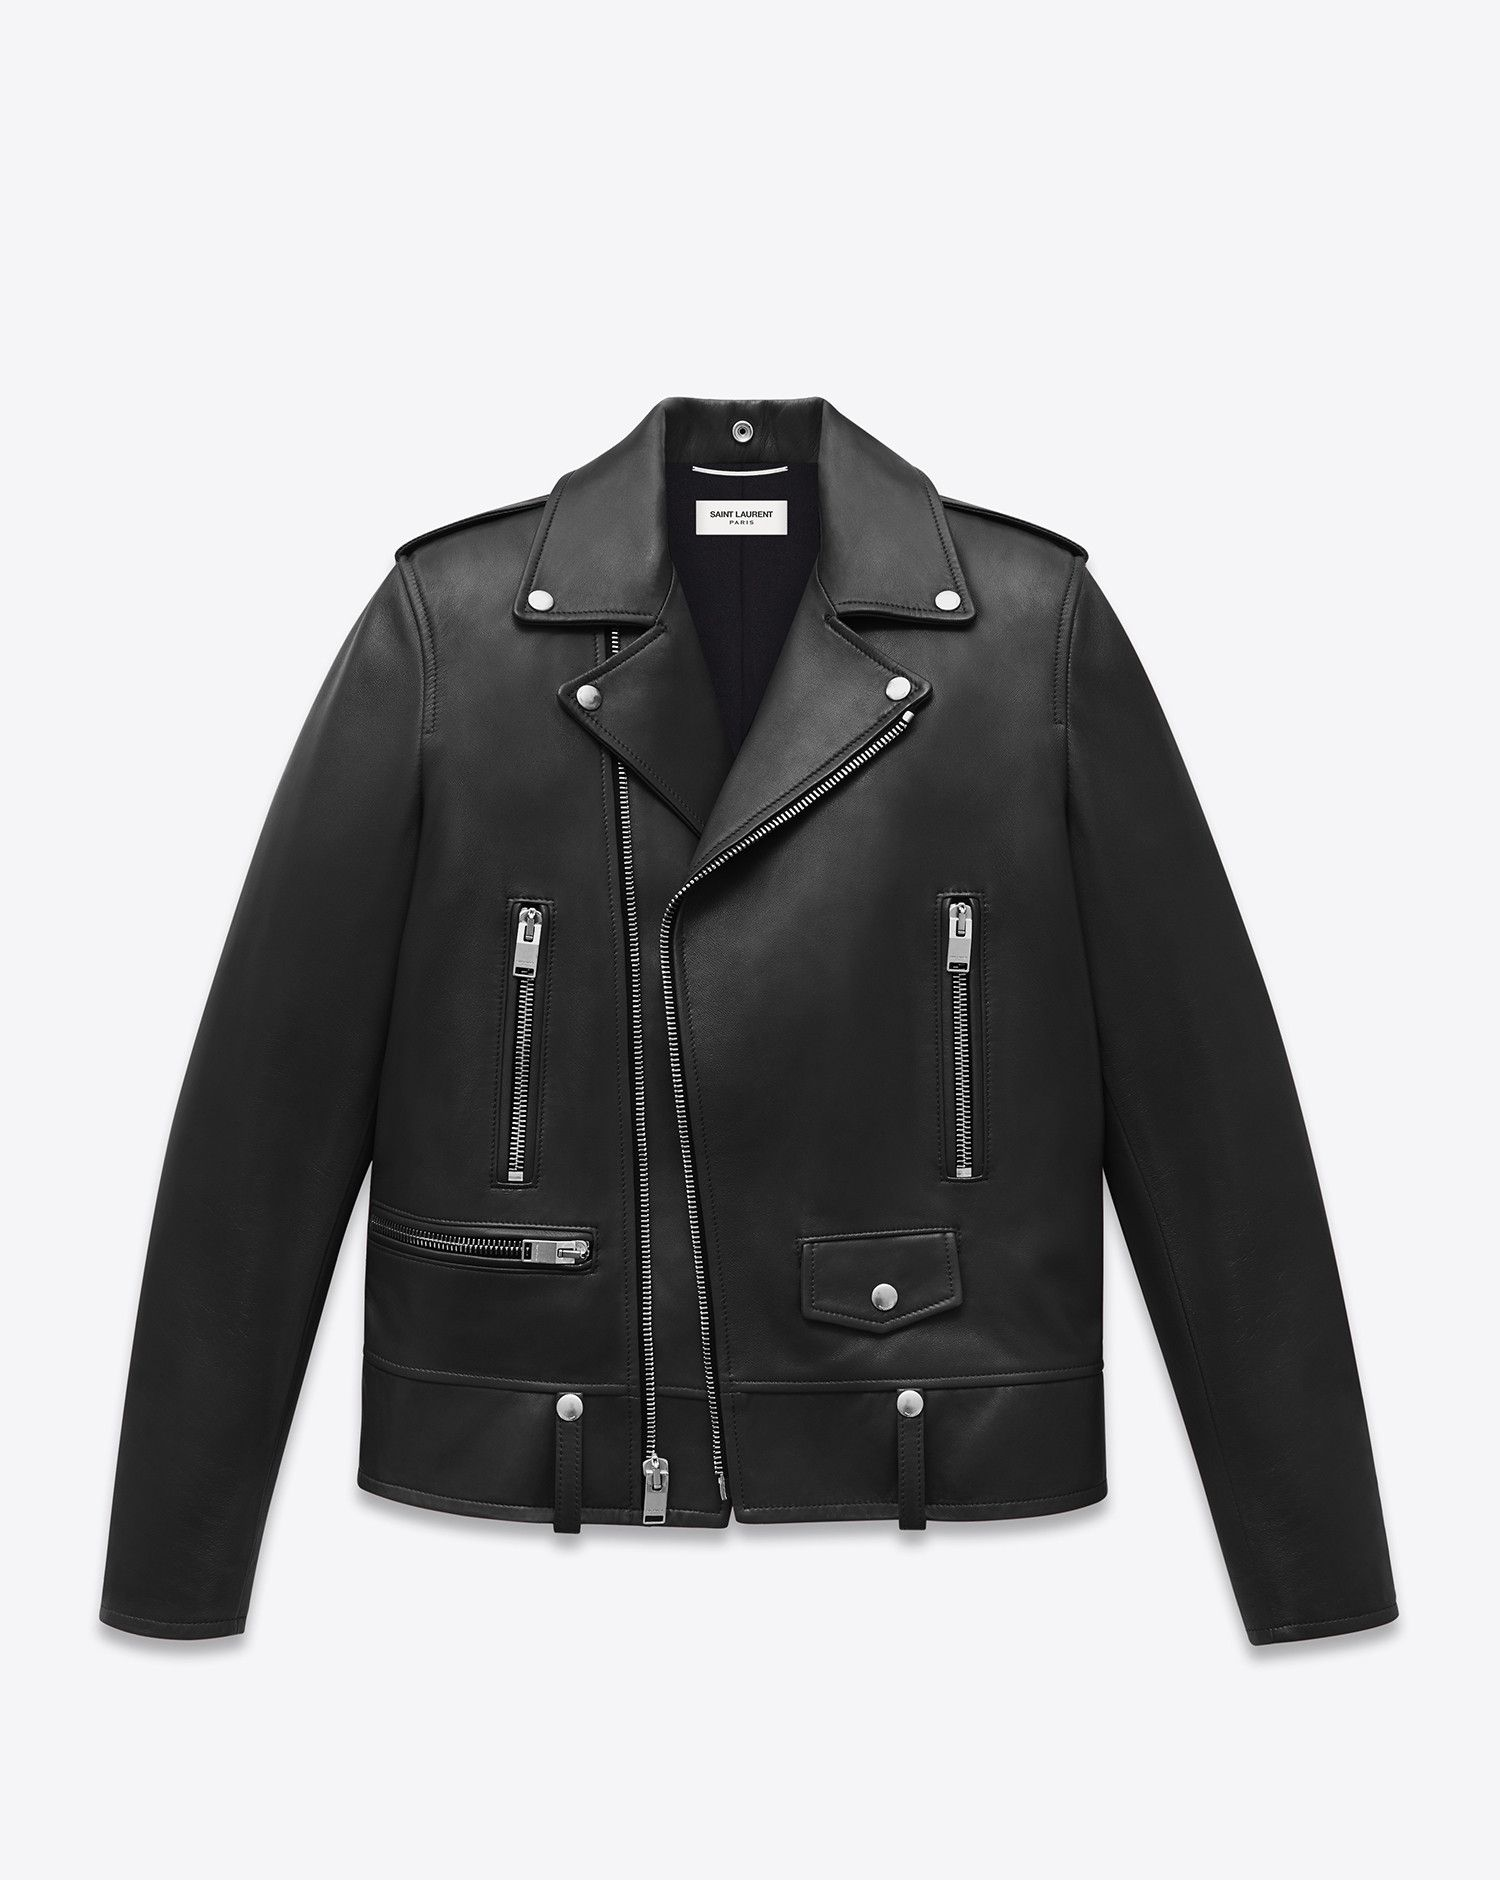 Saint Laurent Leather Jacket Discover The Selection And Shop